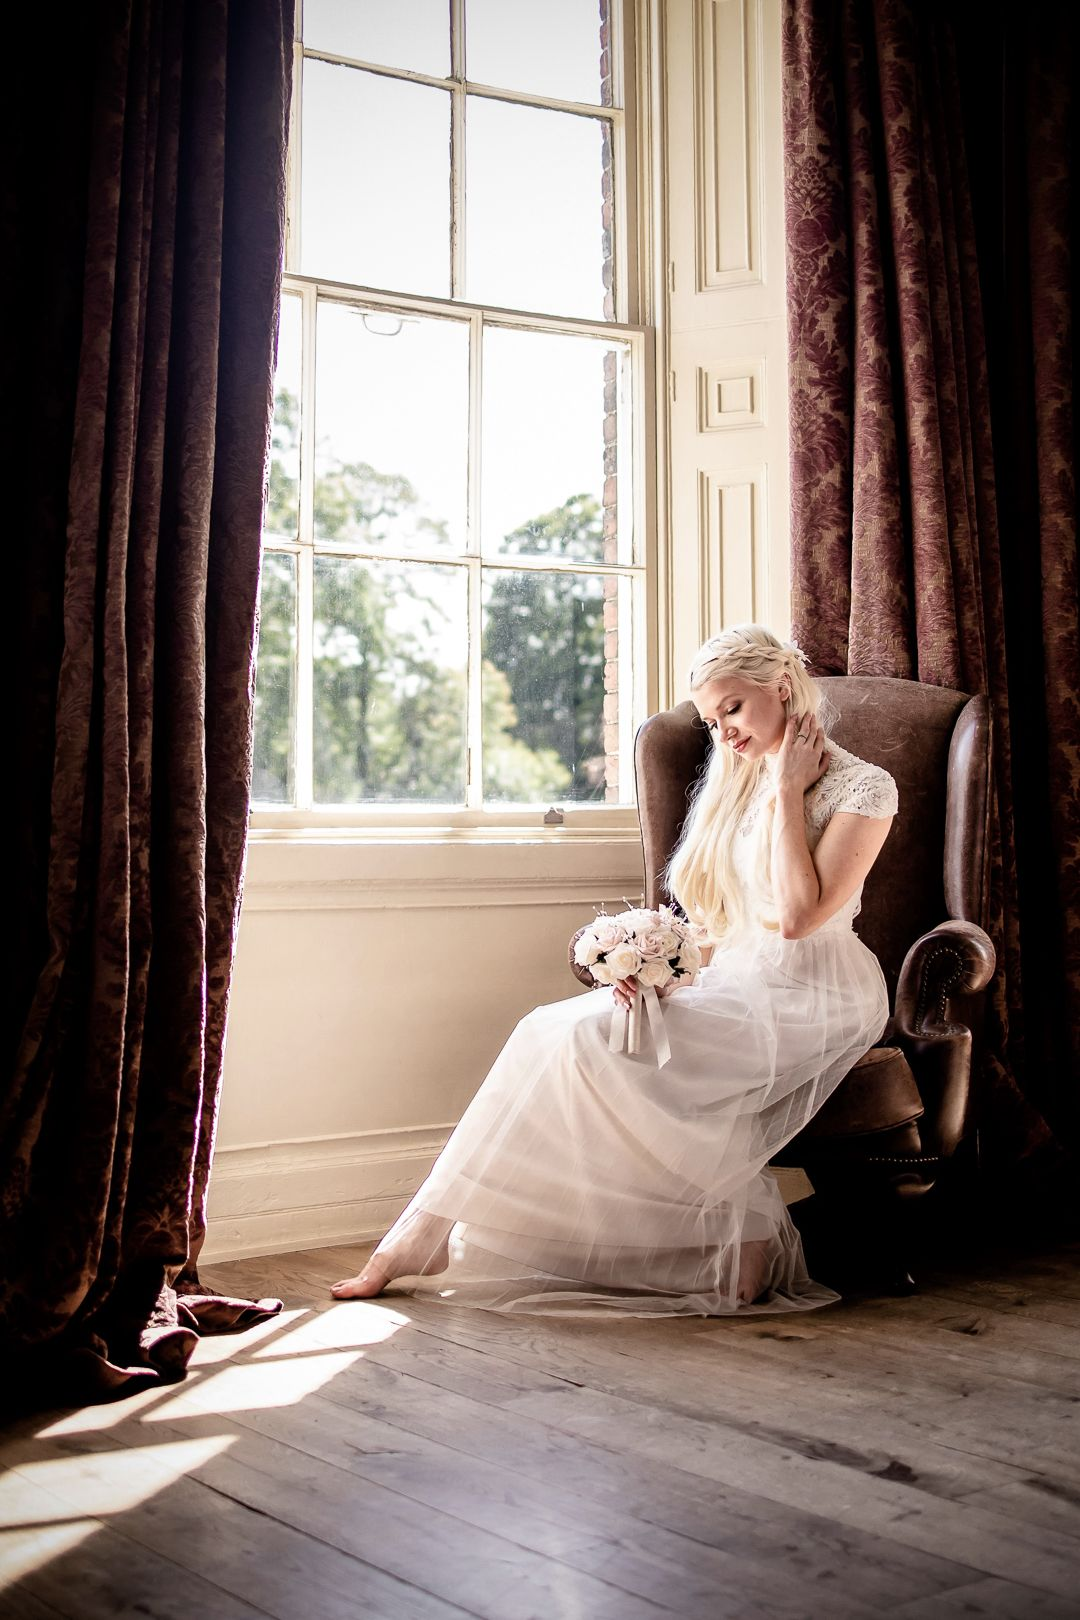 Wedding bride sitting in a manor house chair